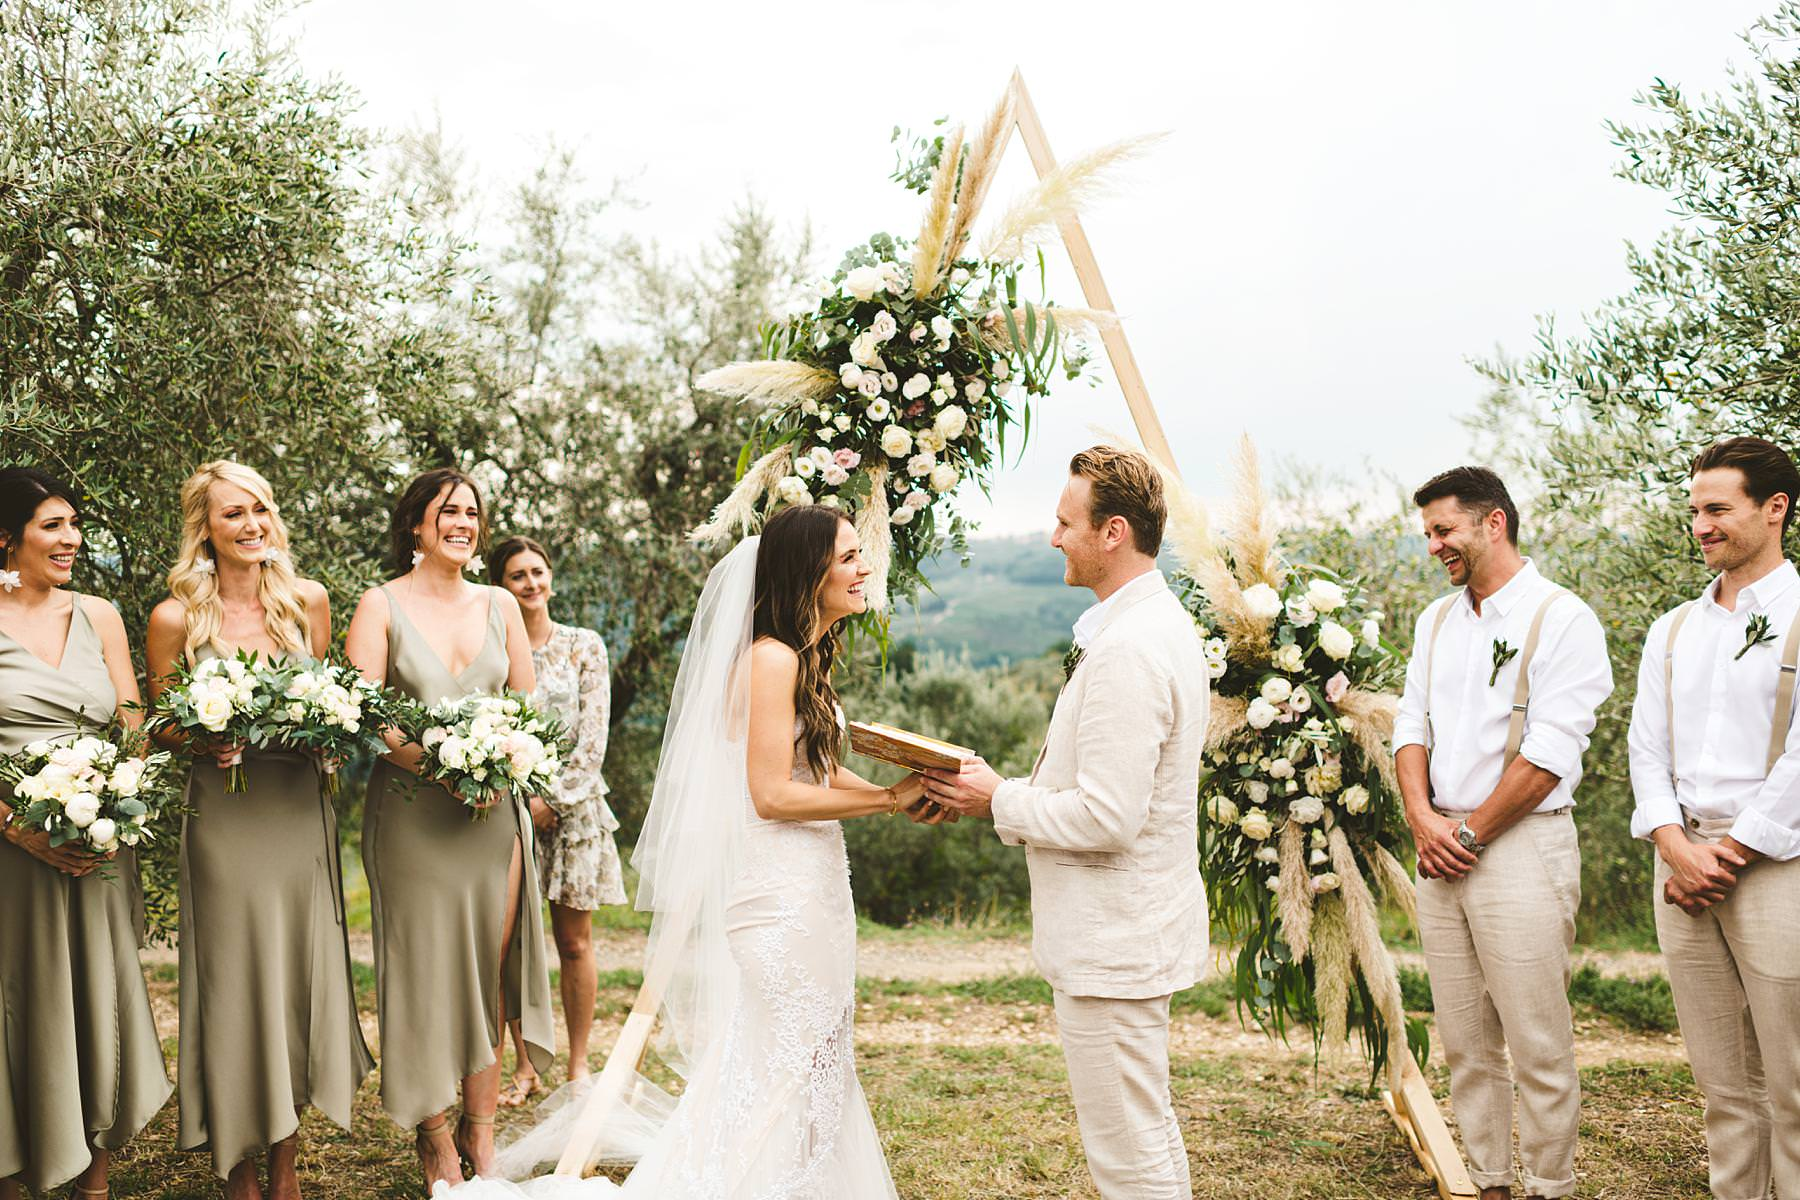 Lovely outdoor symbolic wedding ceremony decor with triangular shape as a stunning frame that witnessed bride and groom promises of love. Modern and unusual wedding framed by the olive groves of Chianti